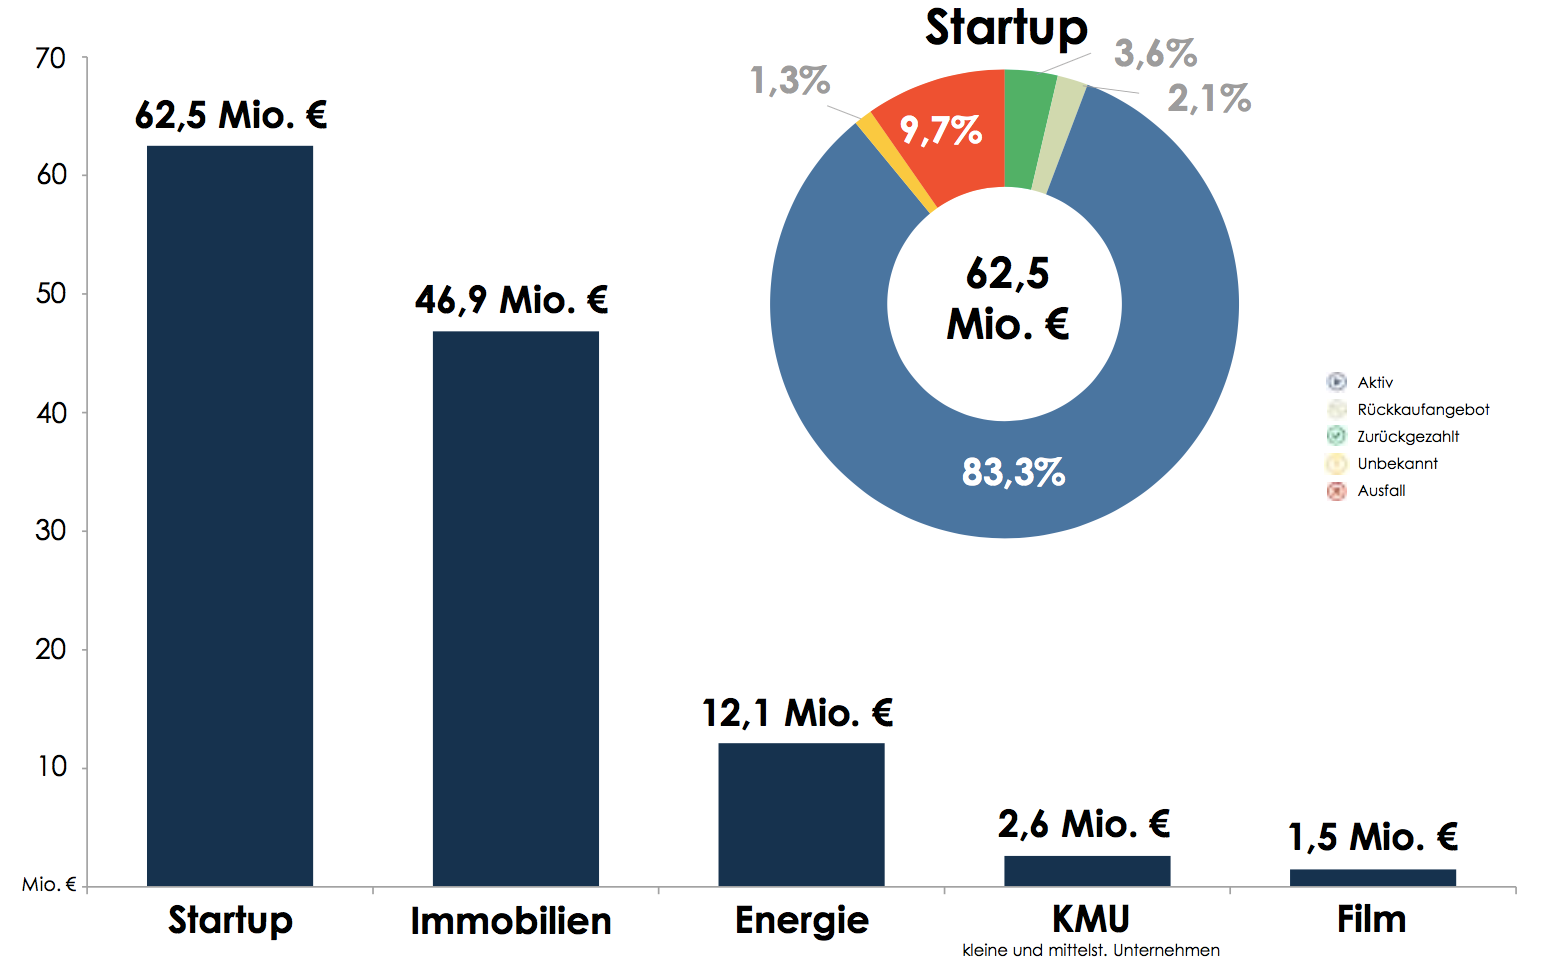 Crowdinvestments (Quelle: Crowdinvest-Erfolgsmonitor/crowdfunding.de